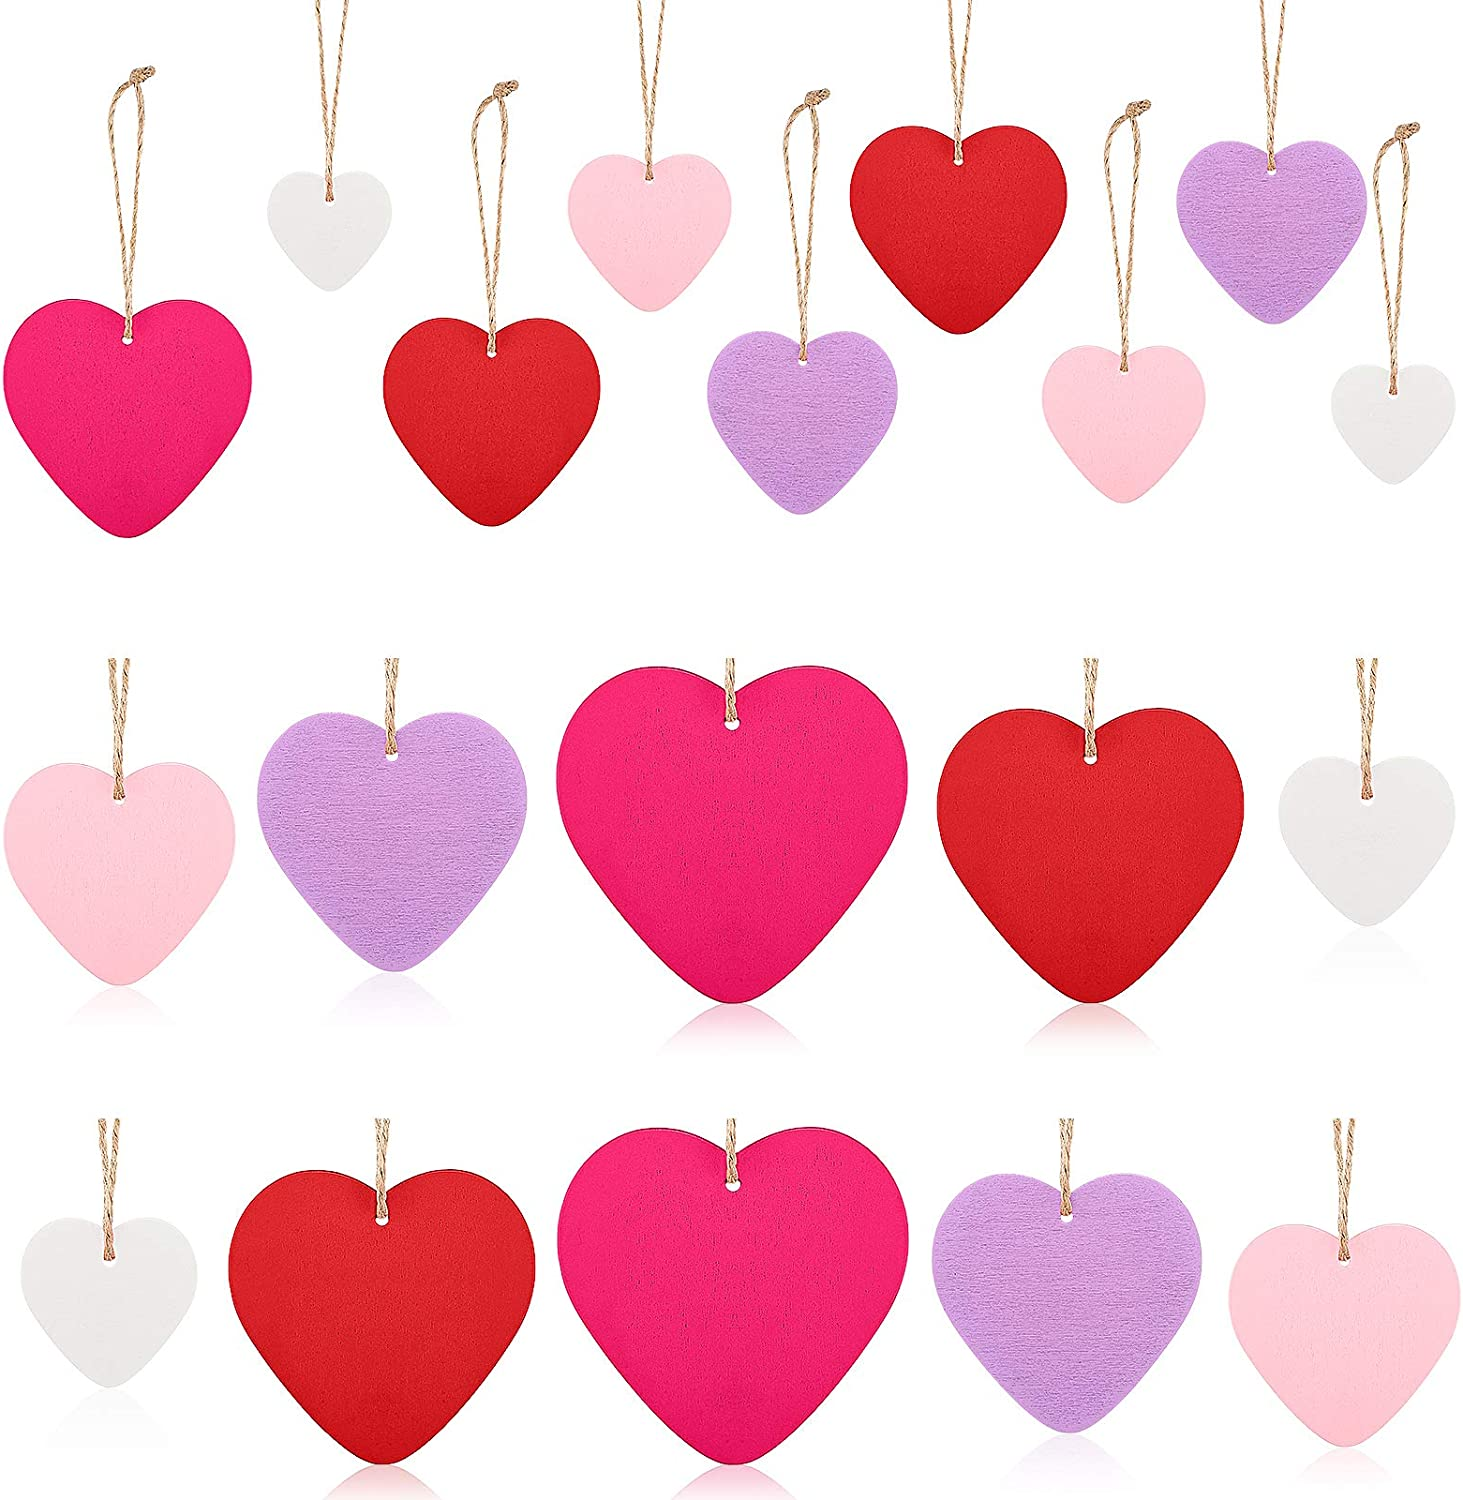 Jetec 25 Pieces Valentine's Day Wooden Heart Ornaments Wood Heart Embellishments Heart-Shaped Wooden Hanging Decorations with Ropes for Valentine's Day Wedding Party, 5 Colors, 5 Sizes